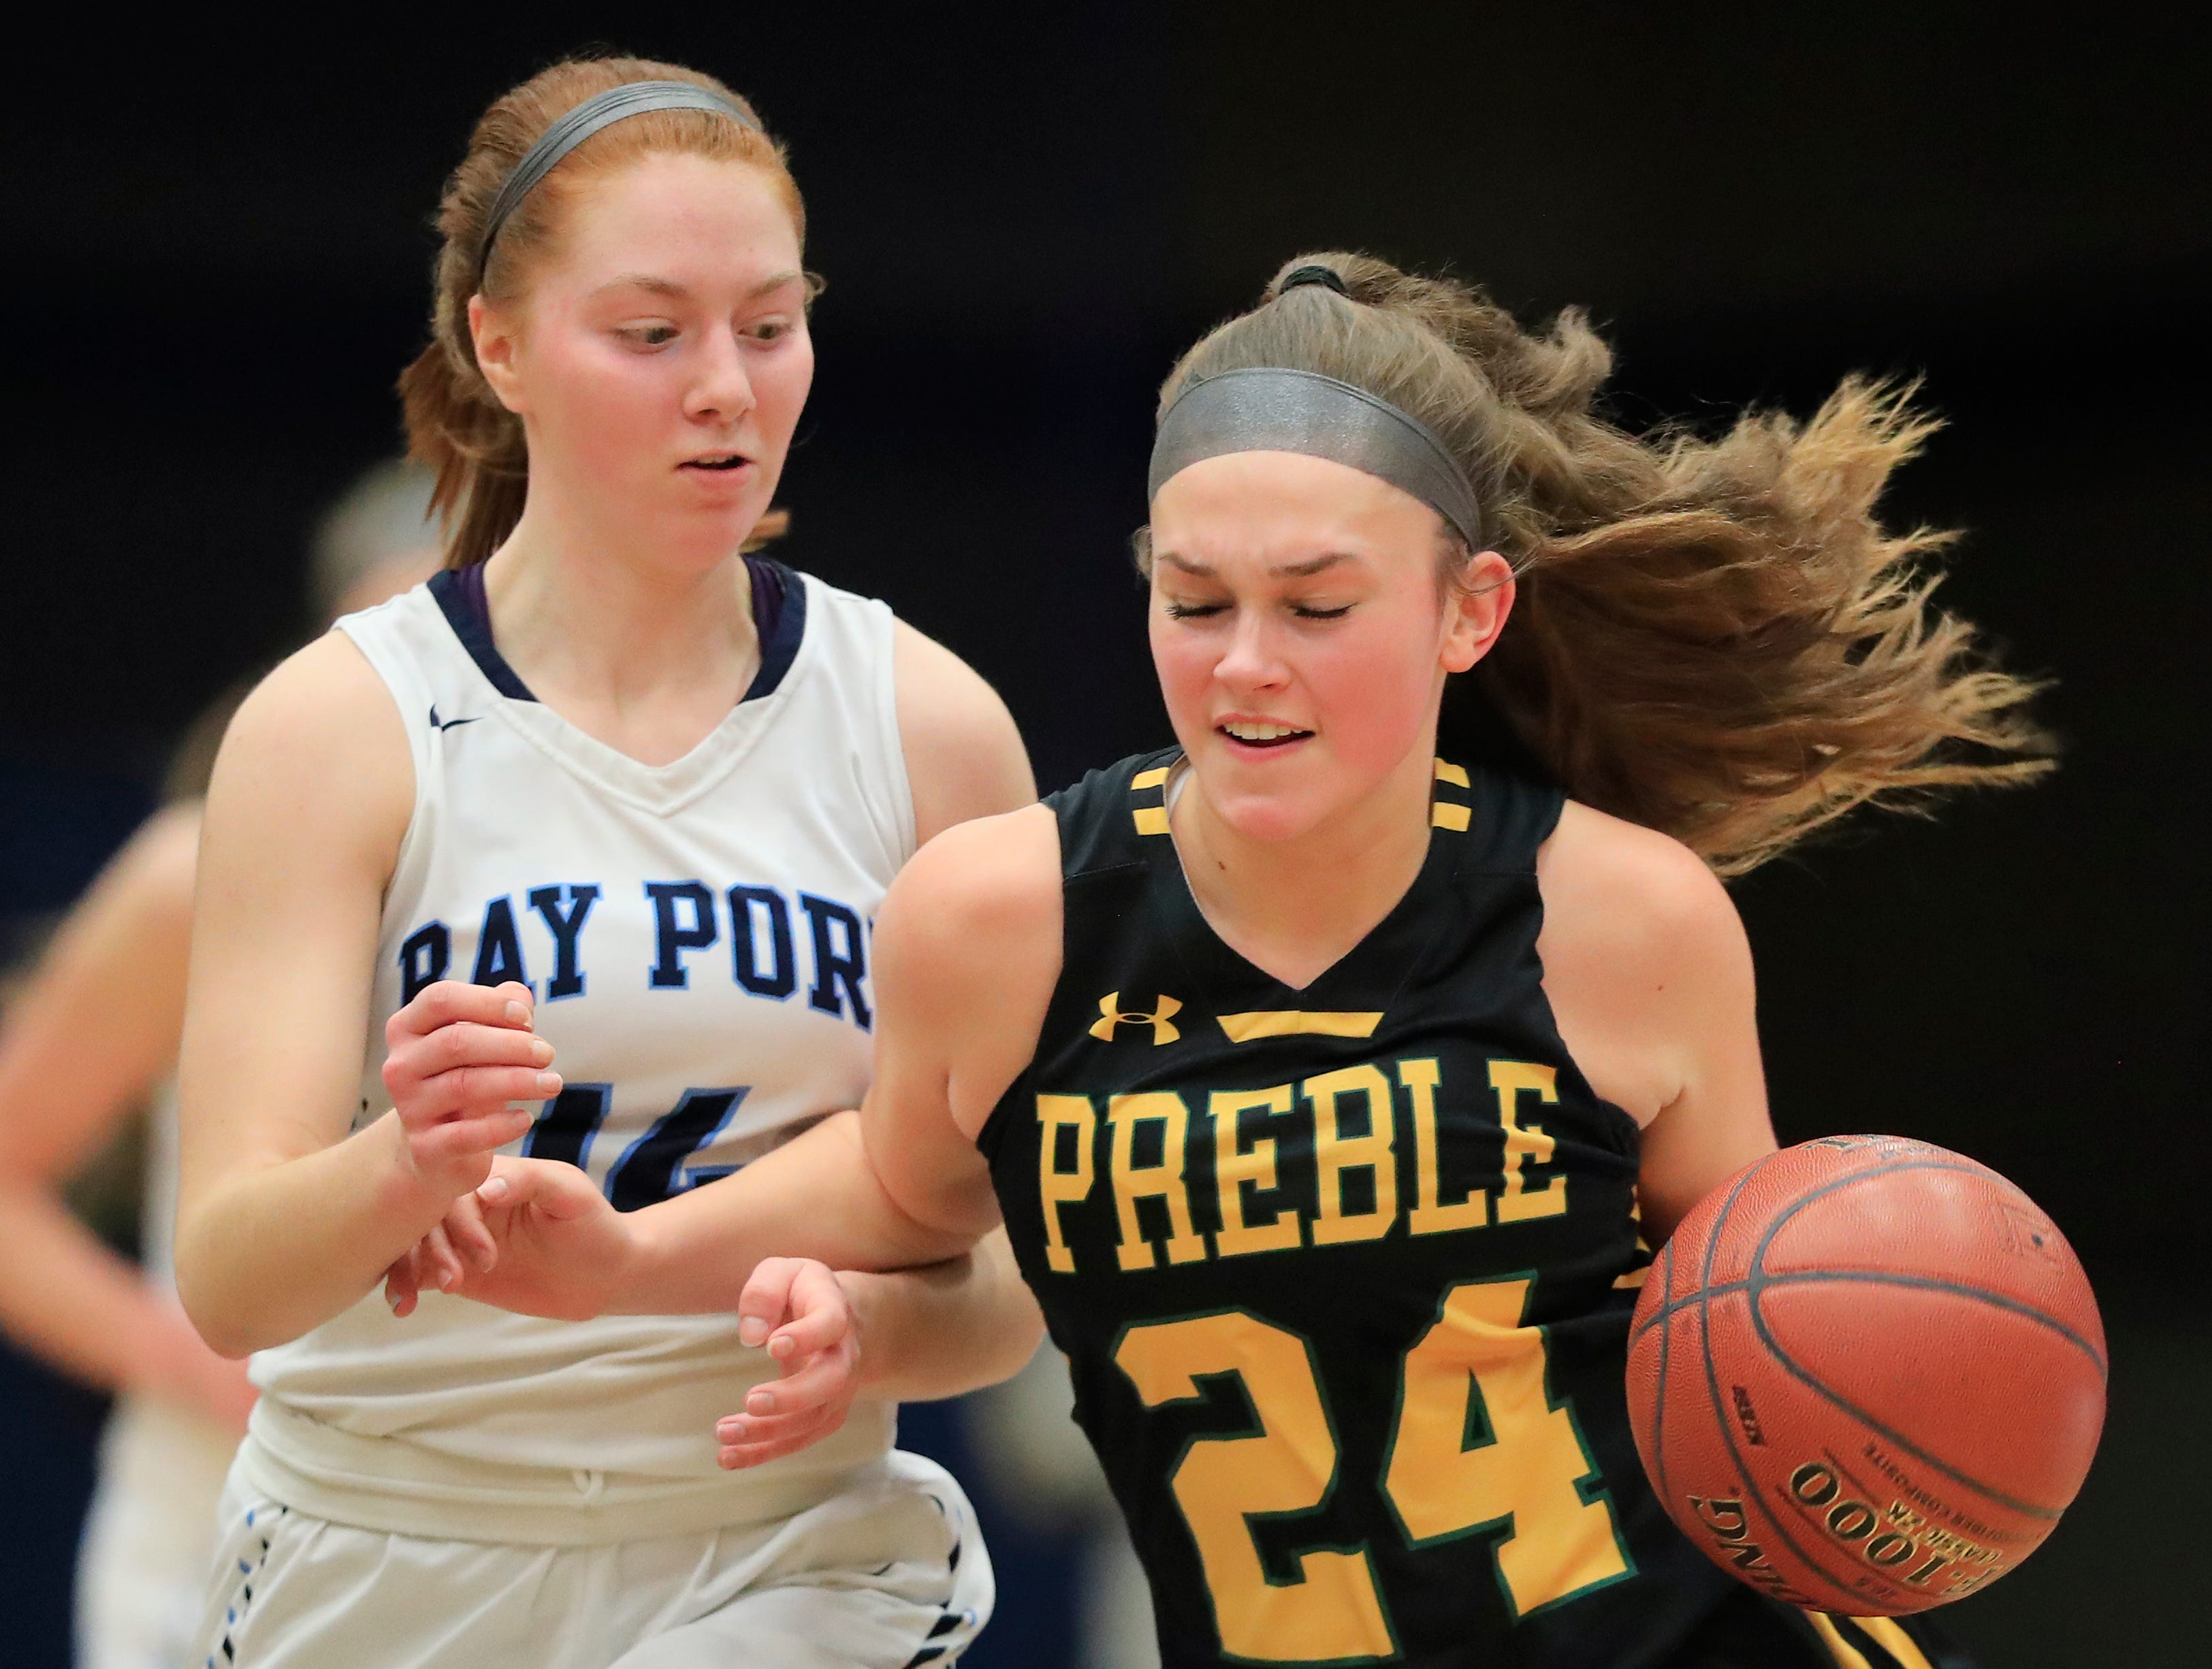 Green Bay Preble's Ella Bialkowski (24) runs past Bay Port's Alaina Abel (14) in an FRCC girls basketball game at Bay Port high school on Friday, February 8, 2019 in Suamico, Wis.